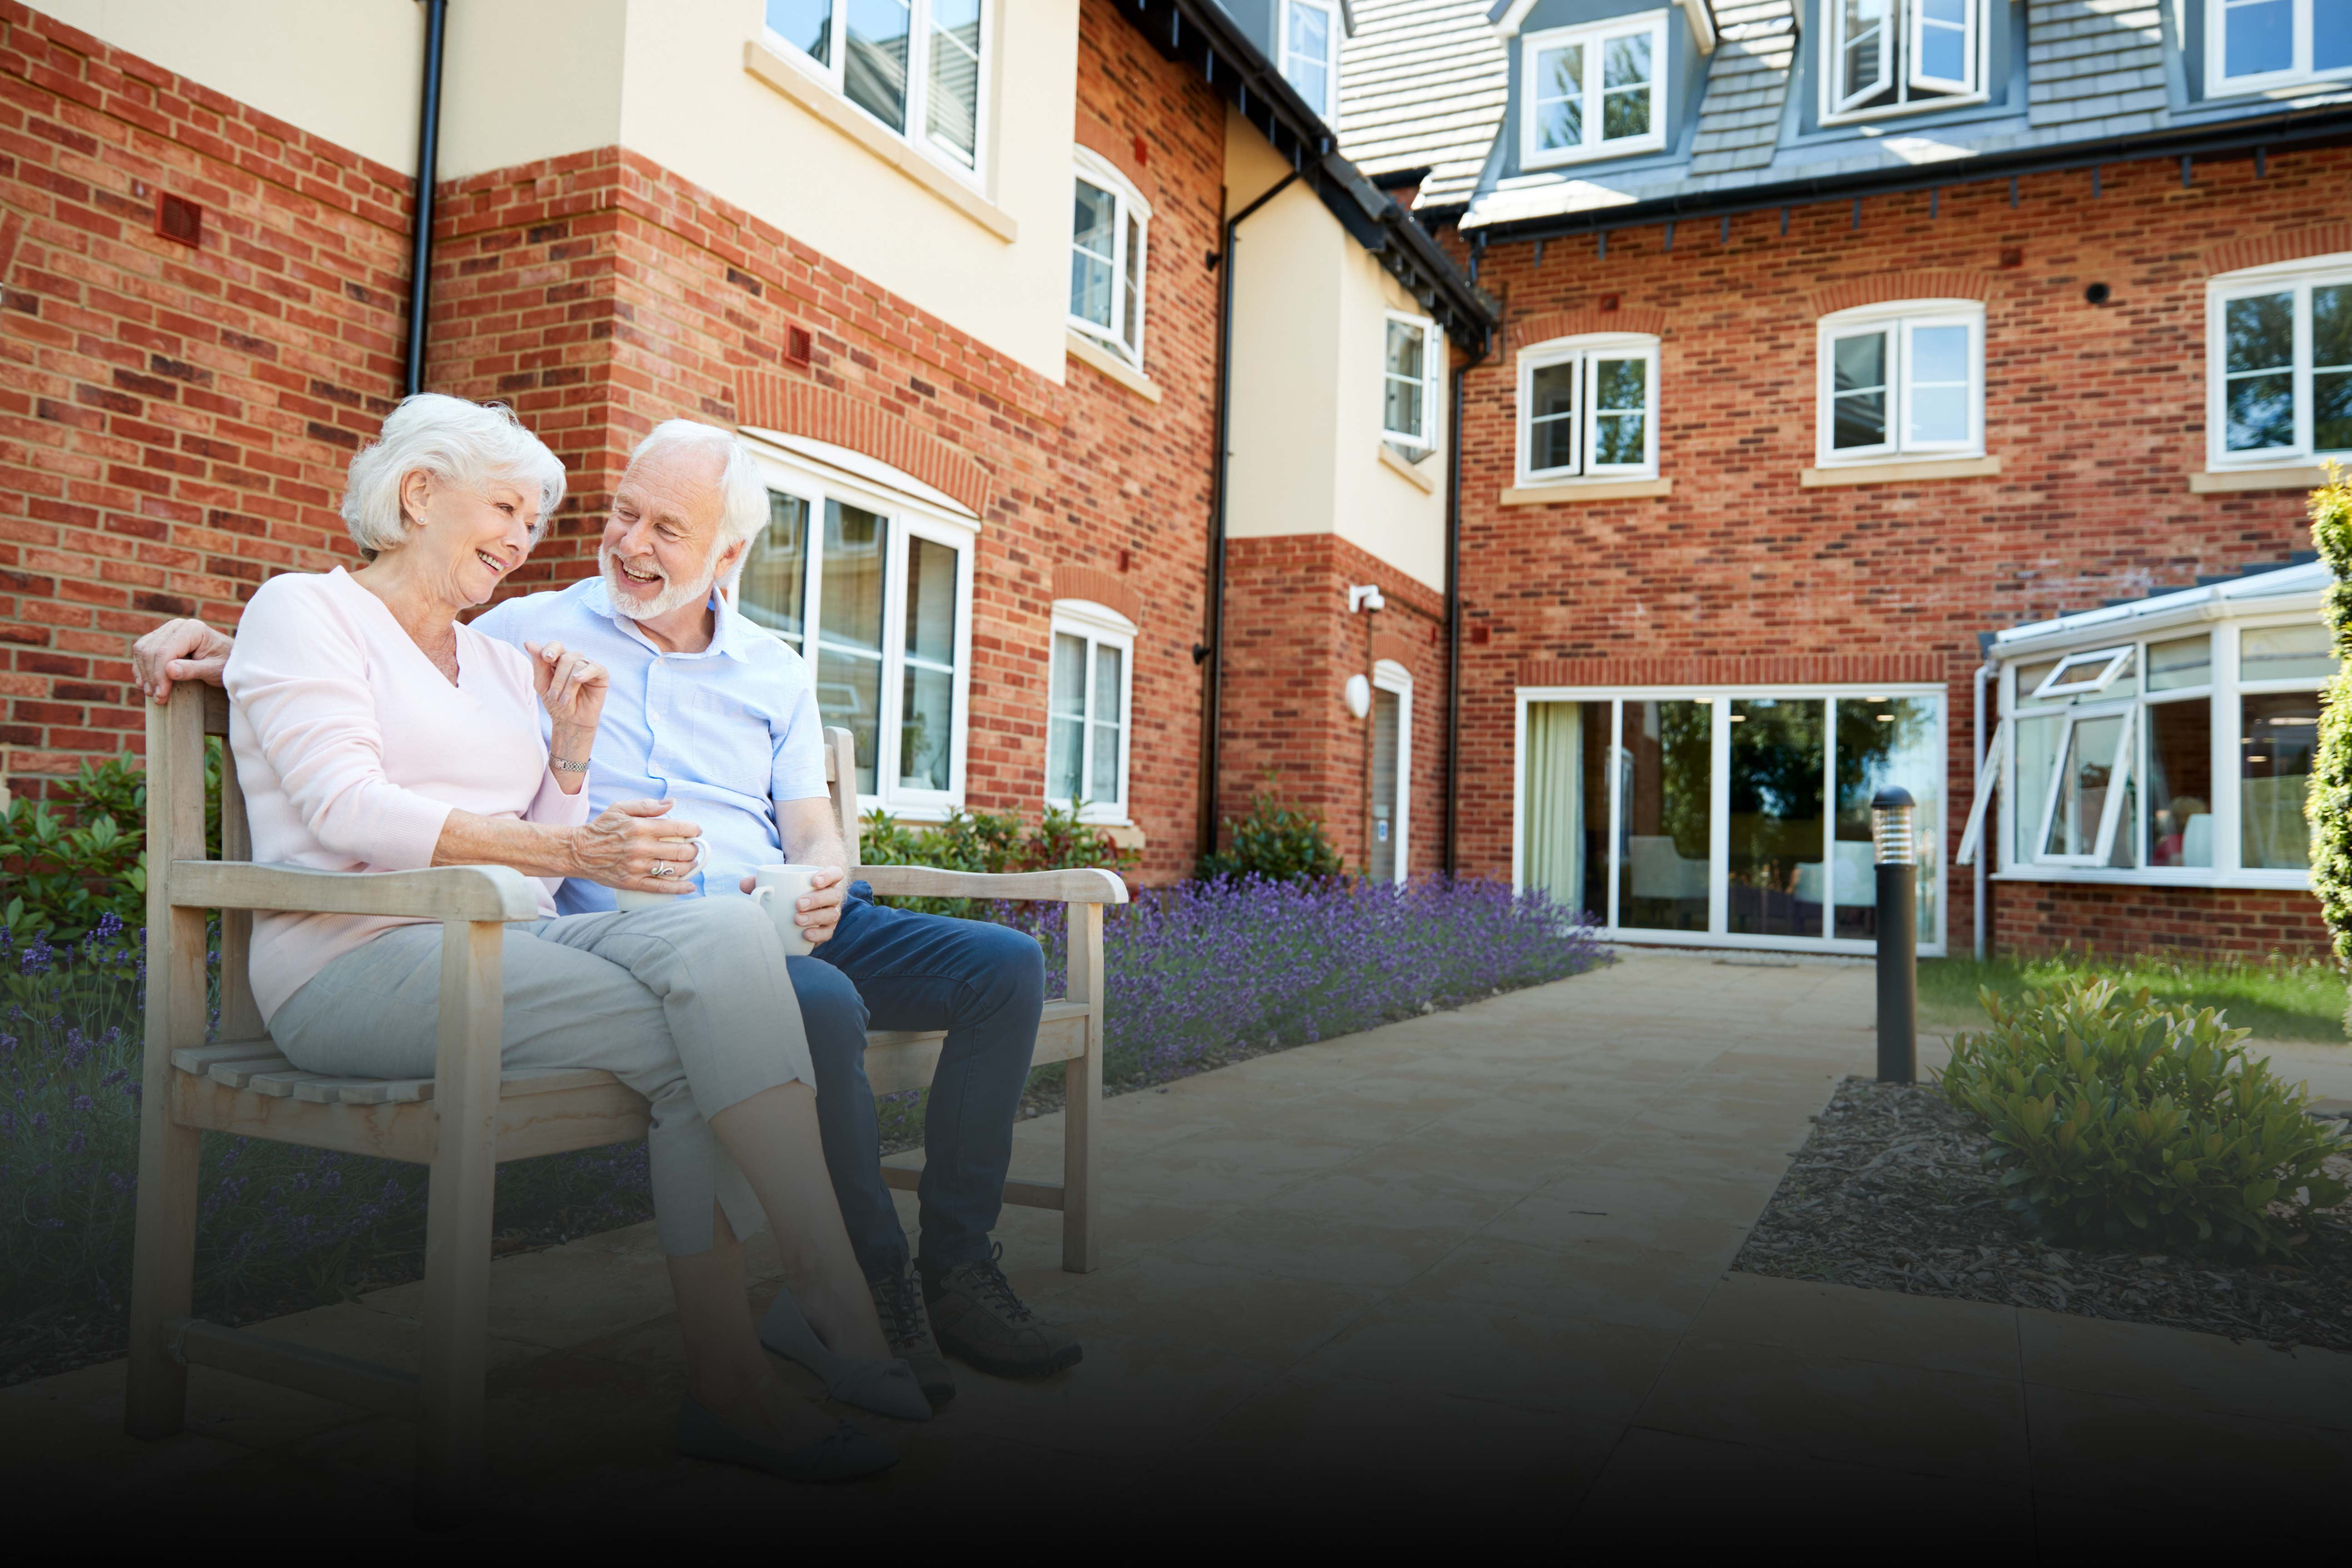 Assisted Living Facilities - How senior citizens can enjoy living in senior communities?